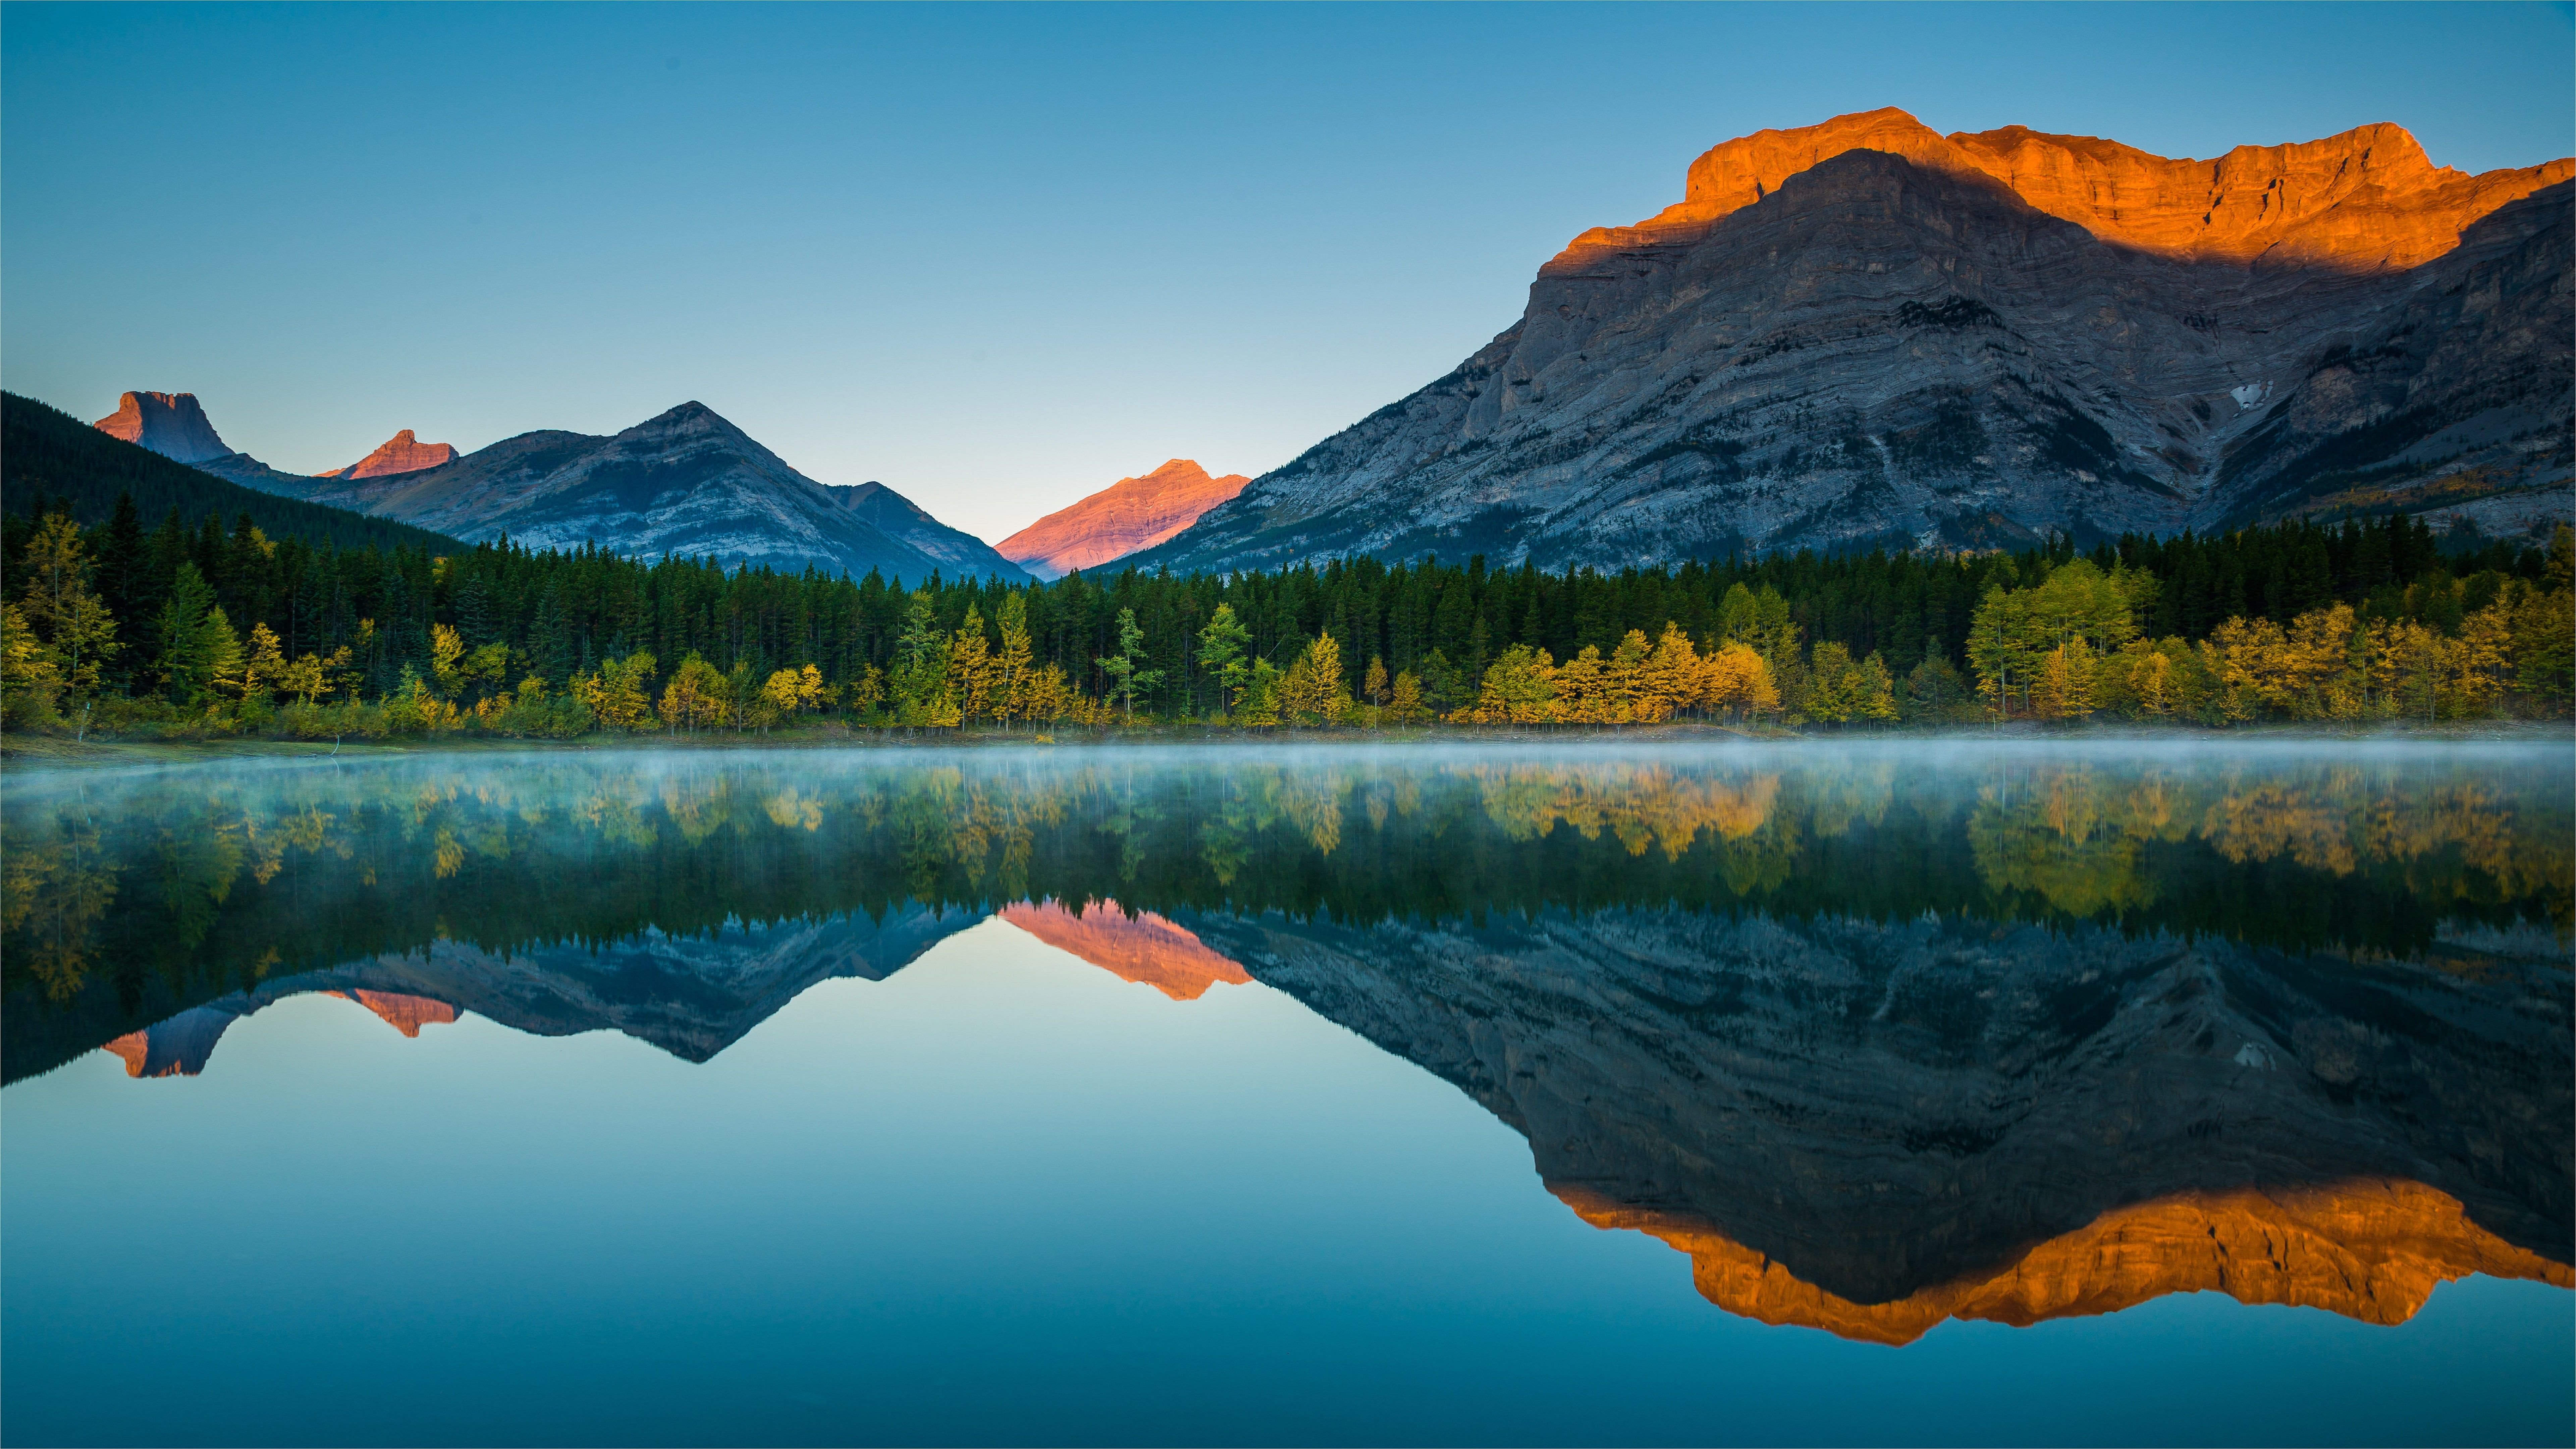 Reflection Nature Wilderness Lake Reflected Mountain Sky Water Autumn Morning Moun Beautiful Landscape Wallpaper Pretty Landscapes Landscape Pictures